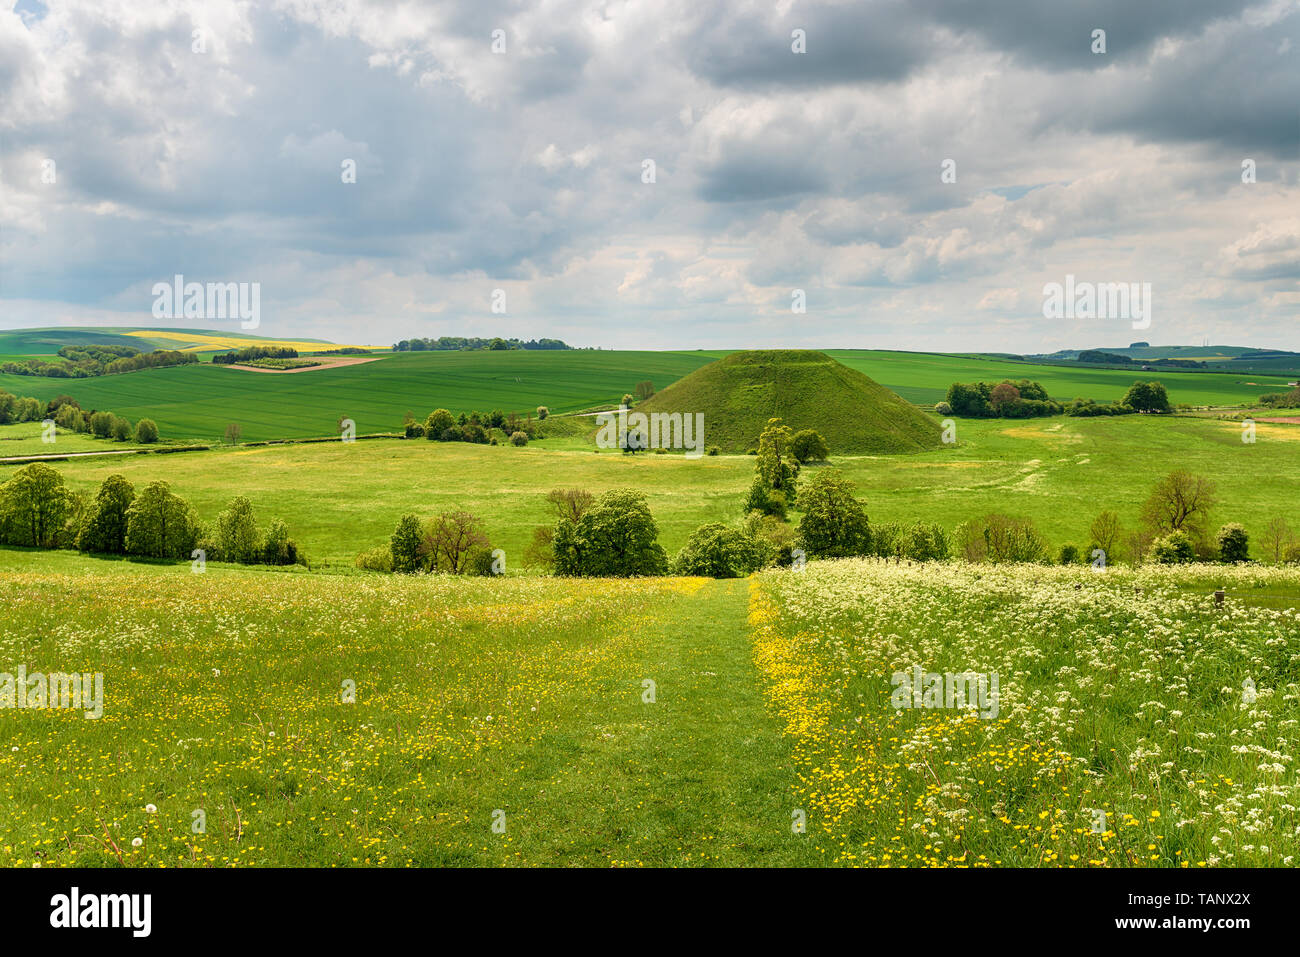 Silbury Hill a Neolithic monument near Avebury in the Wiltshire countryside - Stock Image